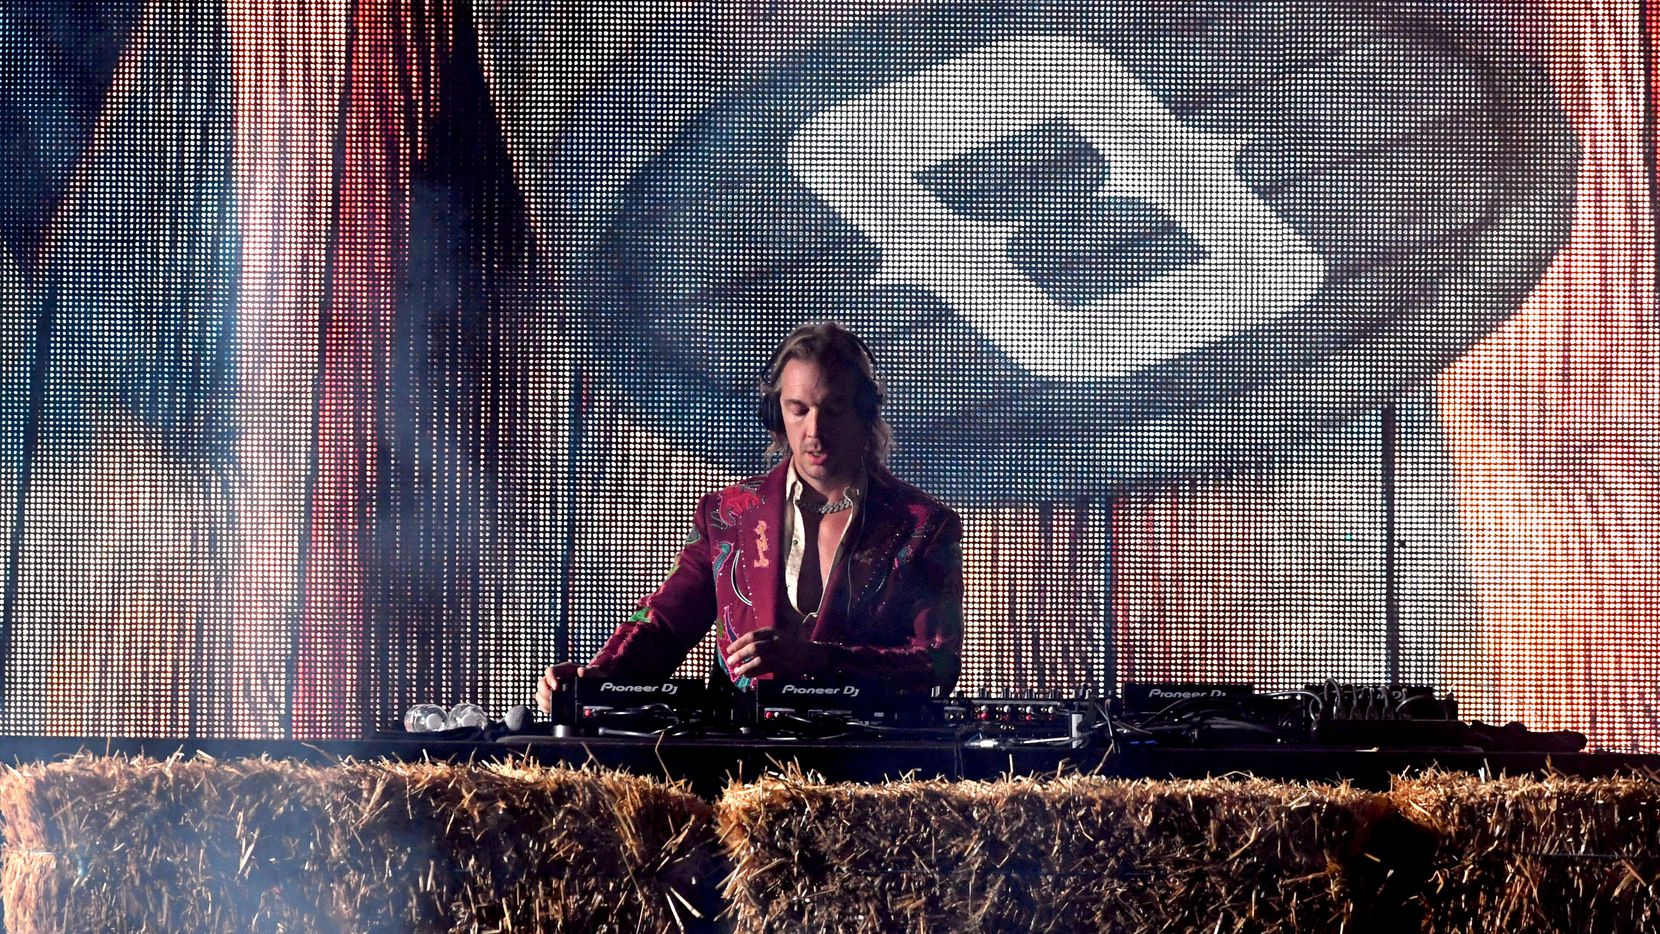 Diplo performed onstage during the Stagecoach Festival on April 28, 2019, in Indio, Calif. The Grammy-winning DJ will be among the headliners at Fort Worth's Fortress Festival in April.